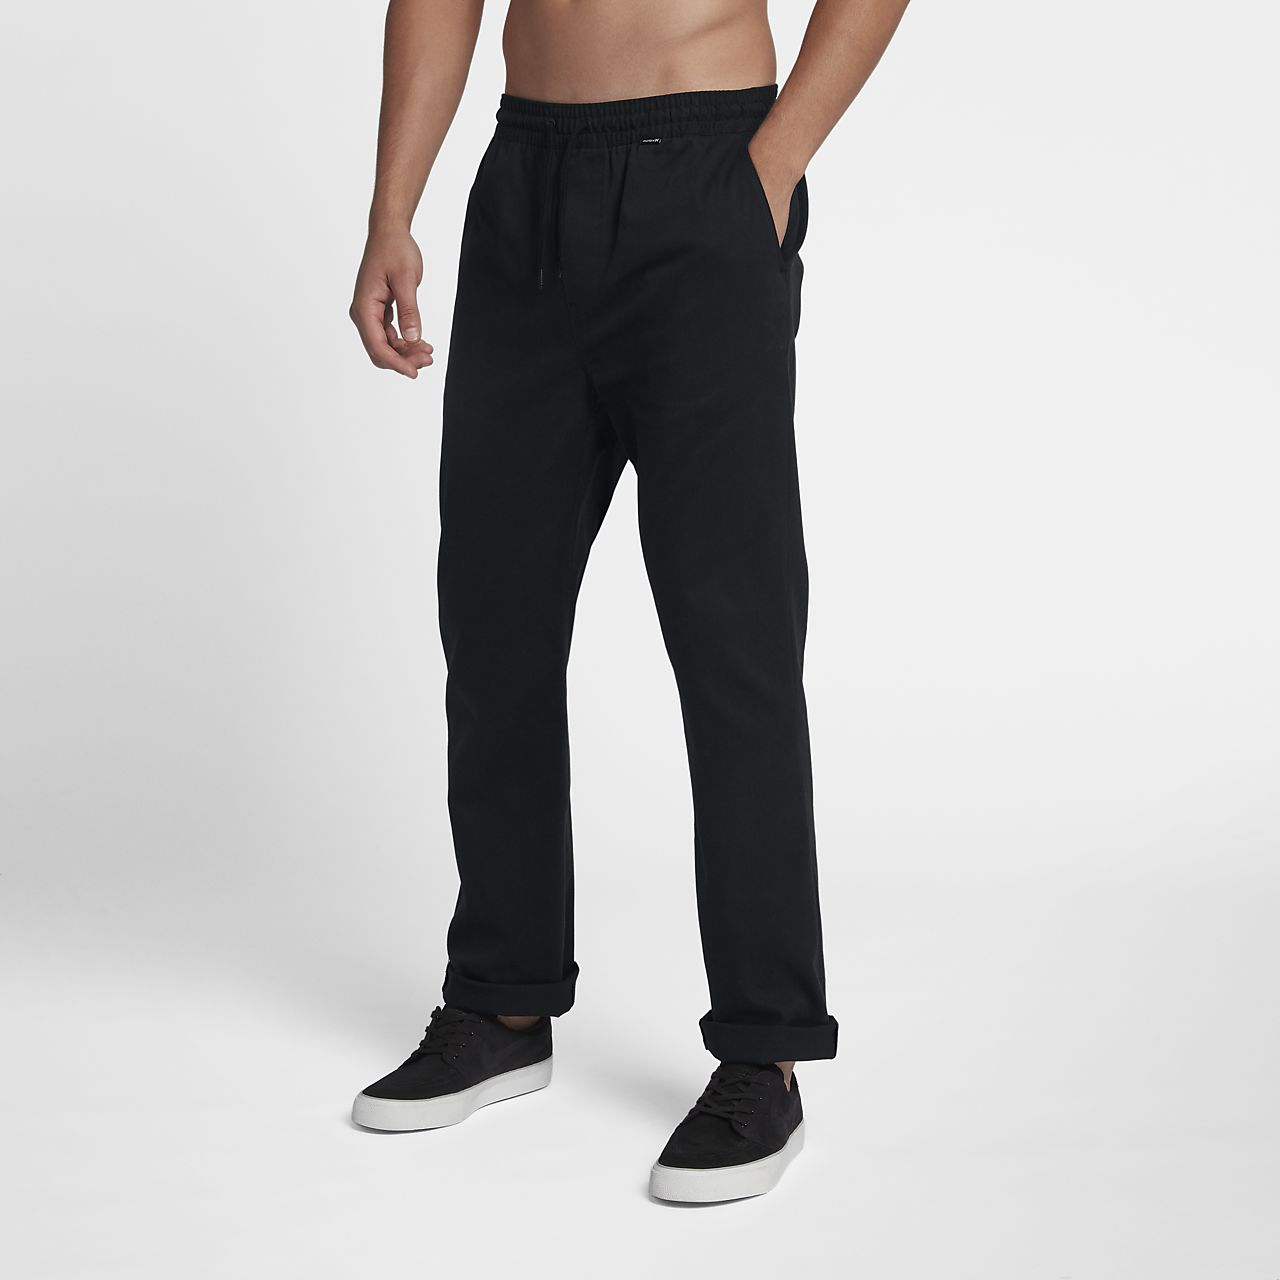 4ba28a7065b Hurley Dri-FIT Ditch Men s Pants. Nike.com